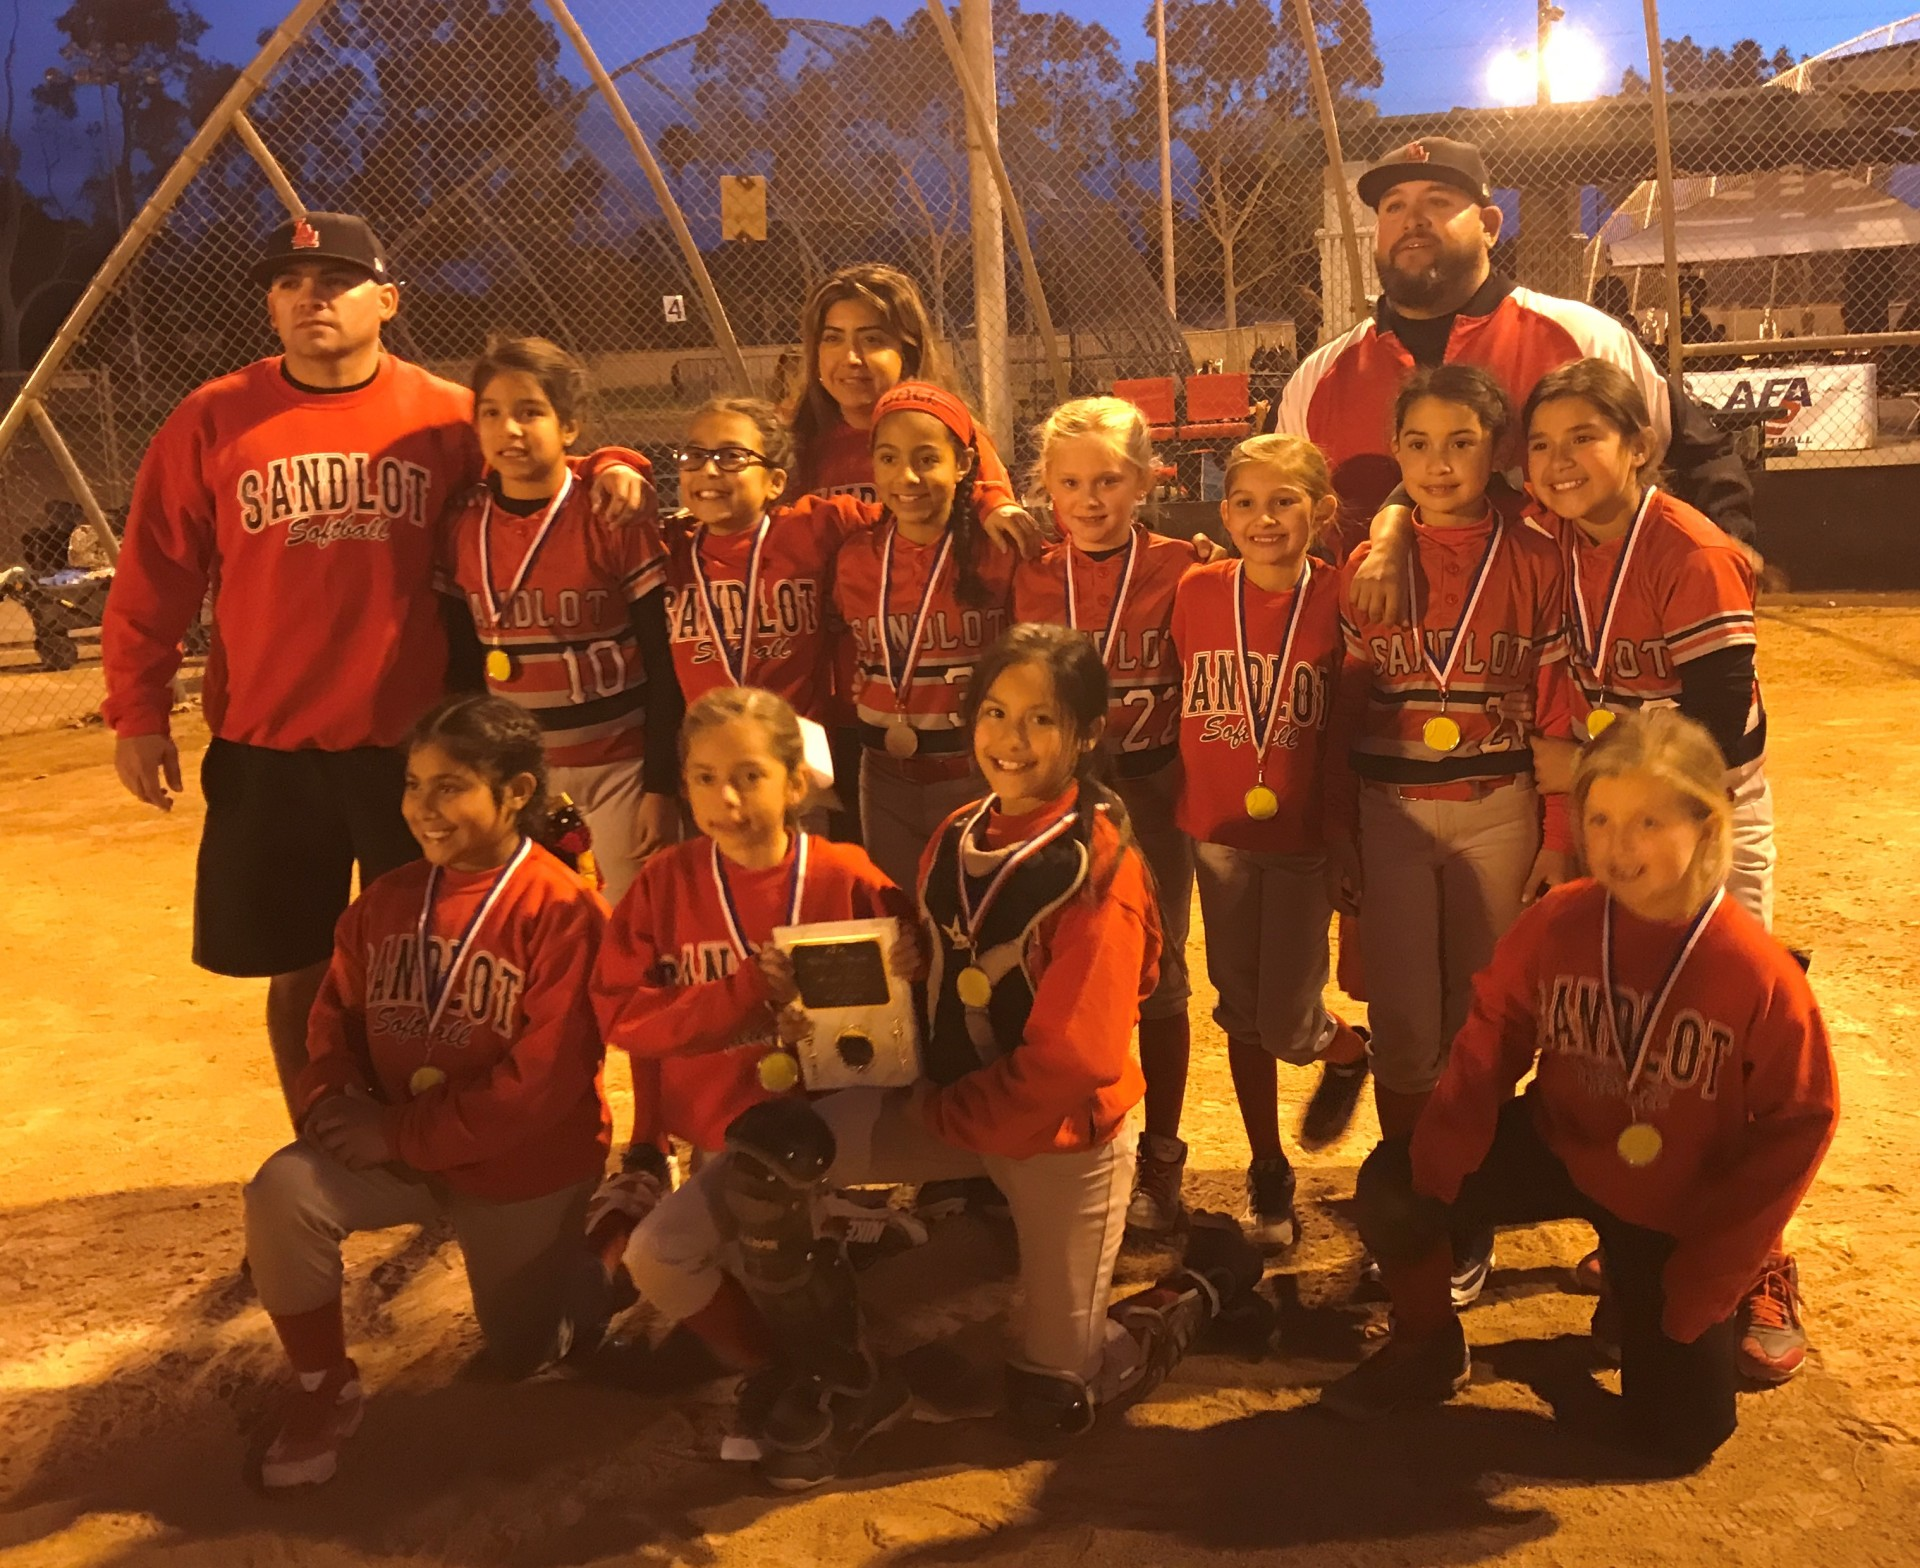 10u - Runner Up - Sandlot Girls